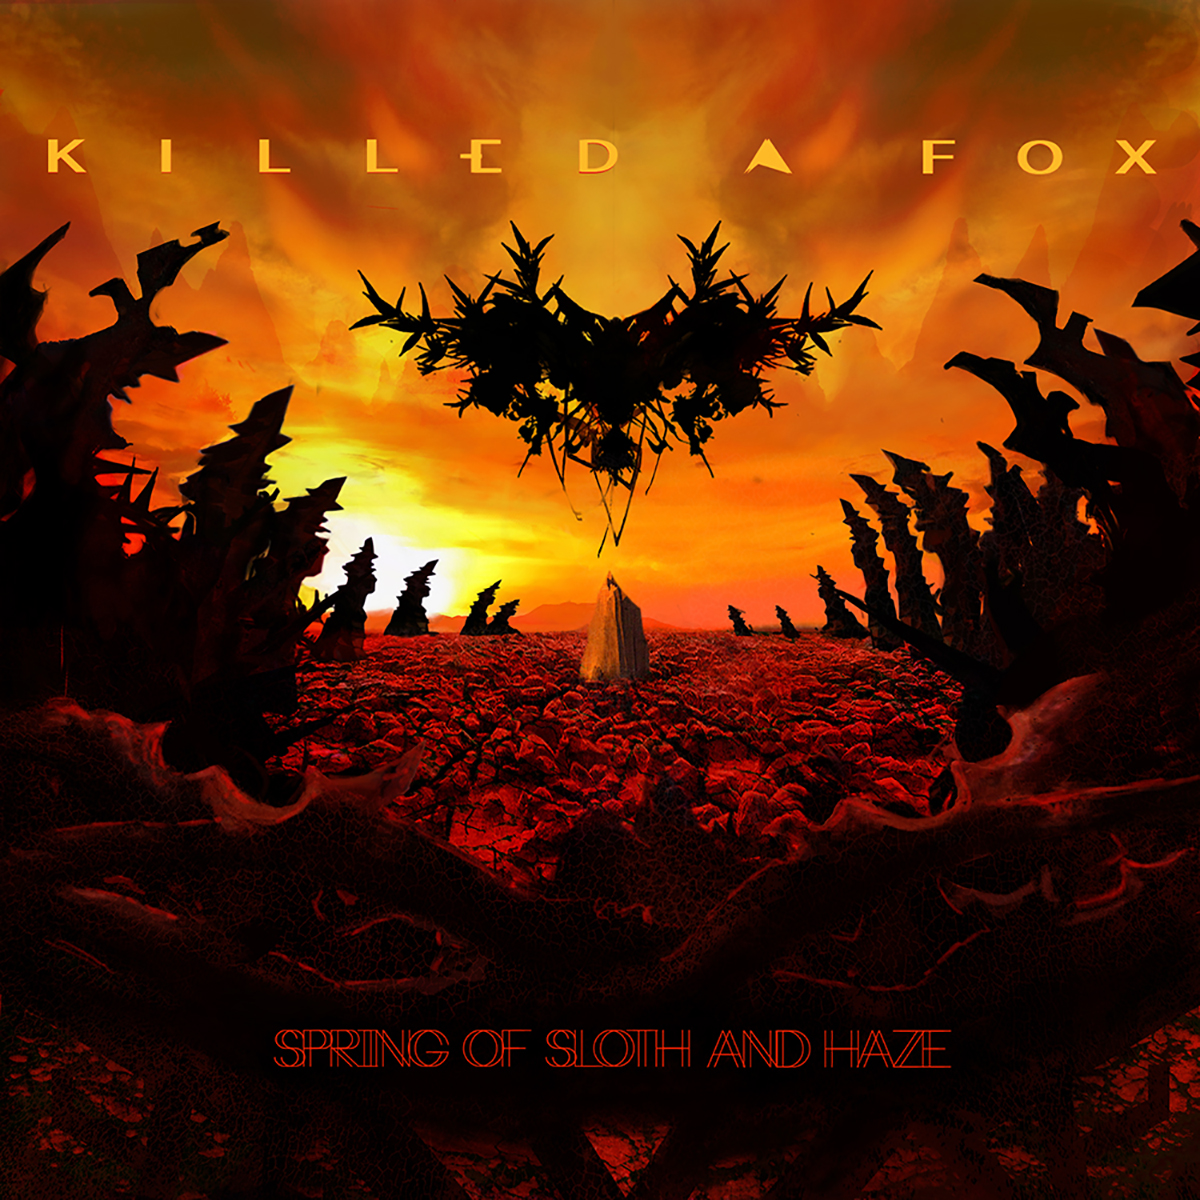 KILLED A FOX - Spring of Sloth and Haze